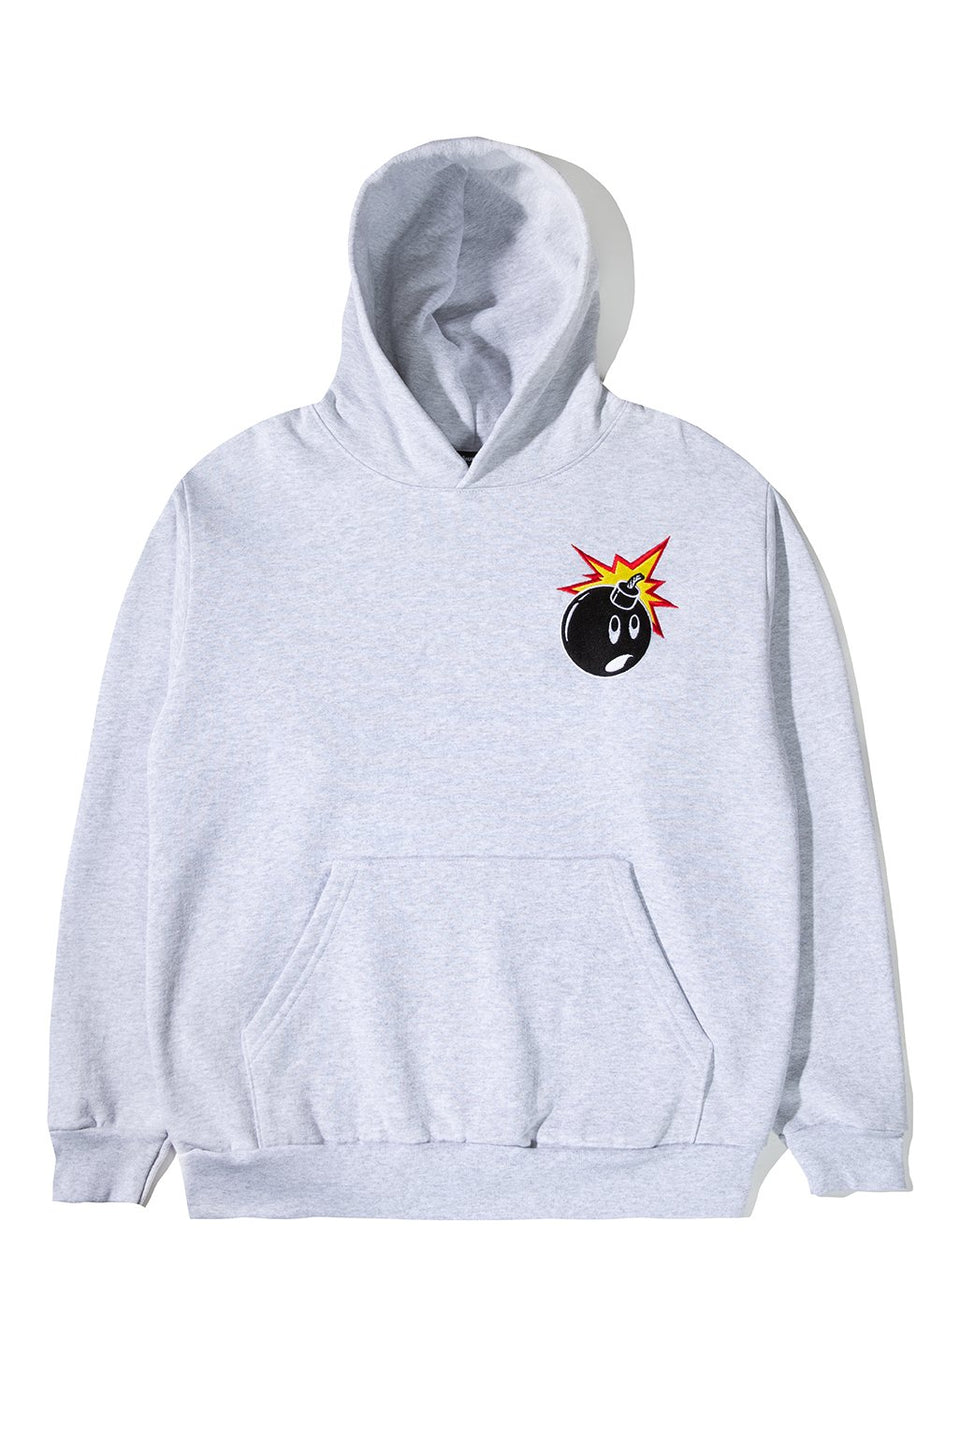 Adam Bomb Embroidered Pullover Hoodie